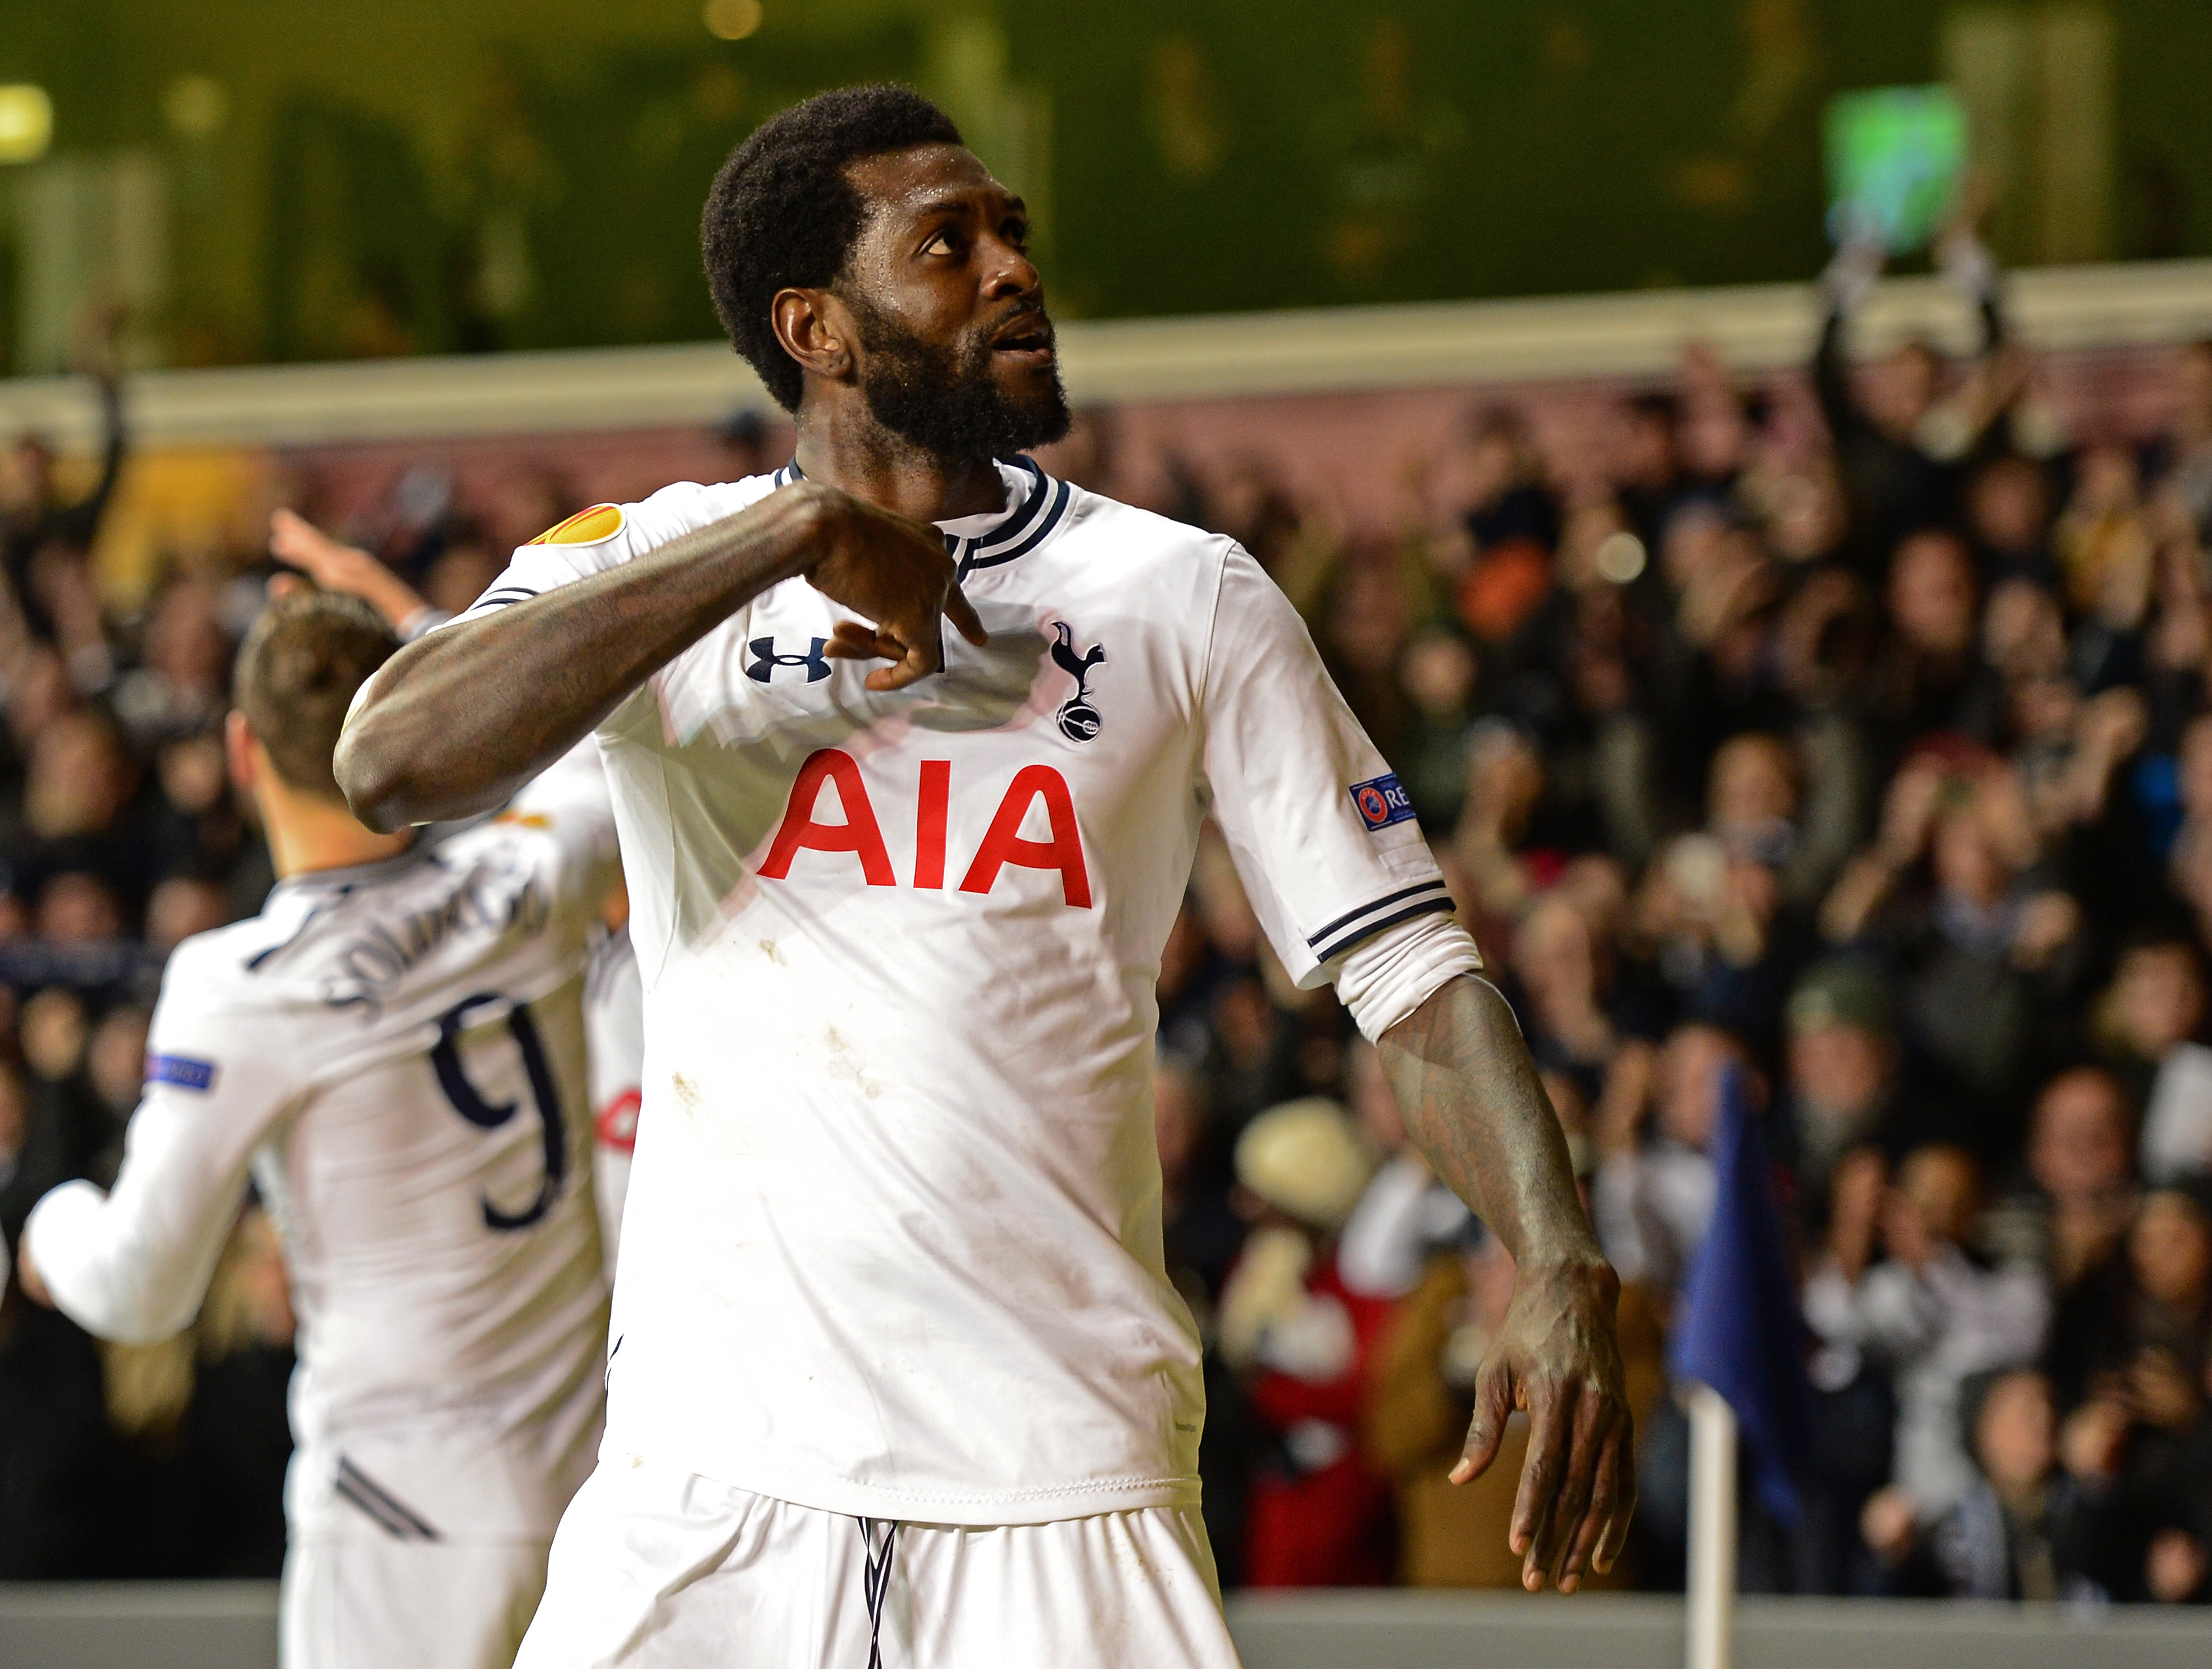 Looking back at the career & life of one Africa's most divisive players - Emmanuel Adebayor 2